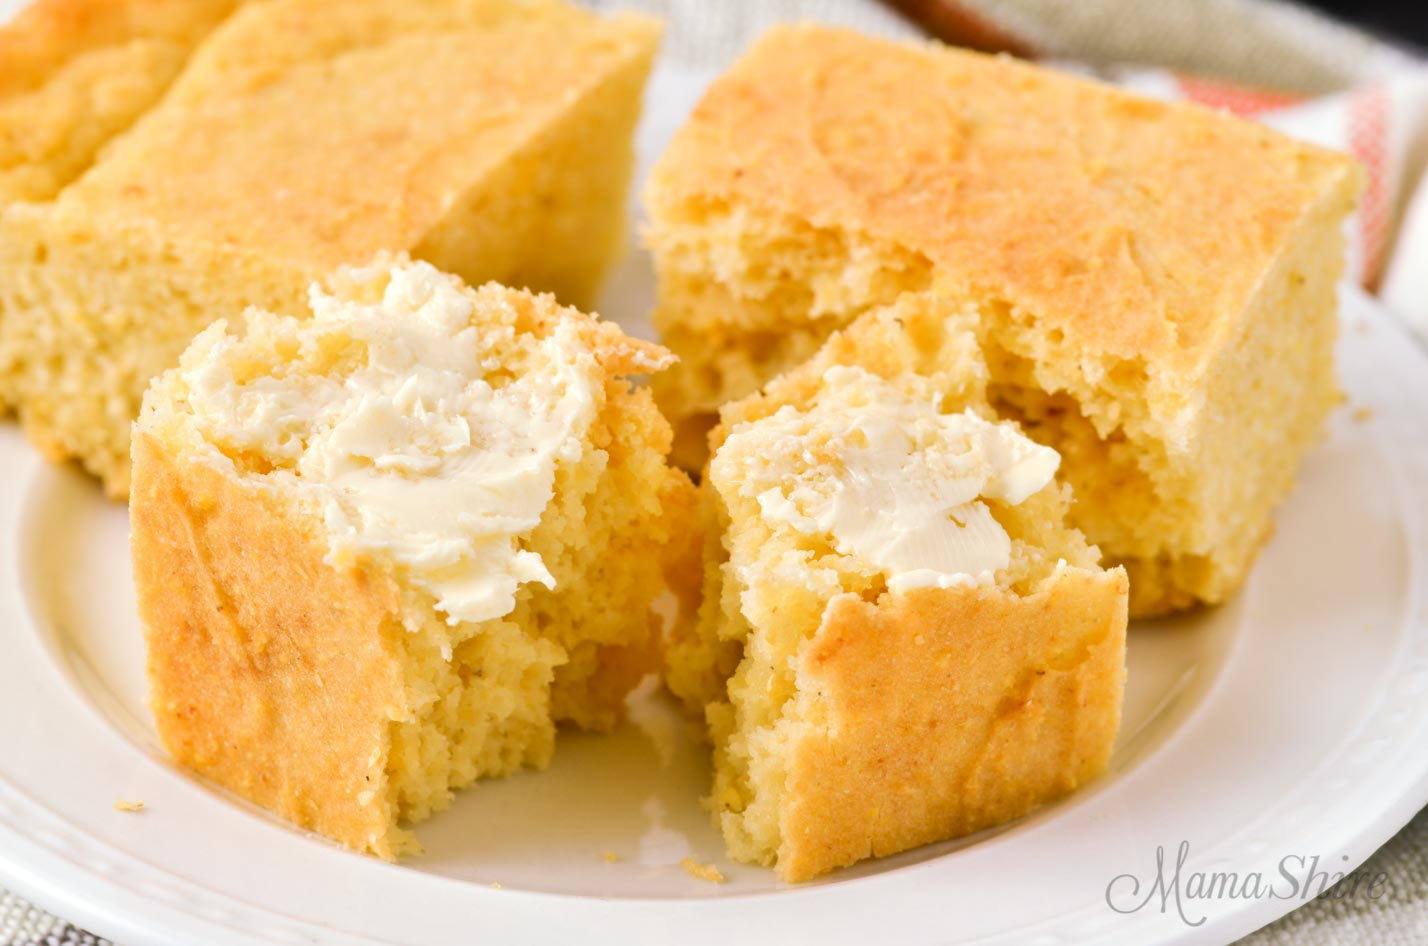 Gluten-free cornbread with Smart Balance non-dairy buttery spread on top.